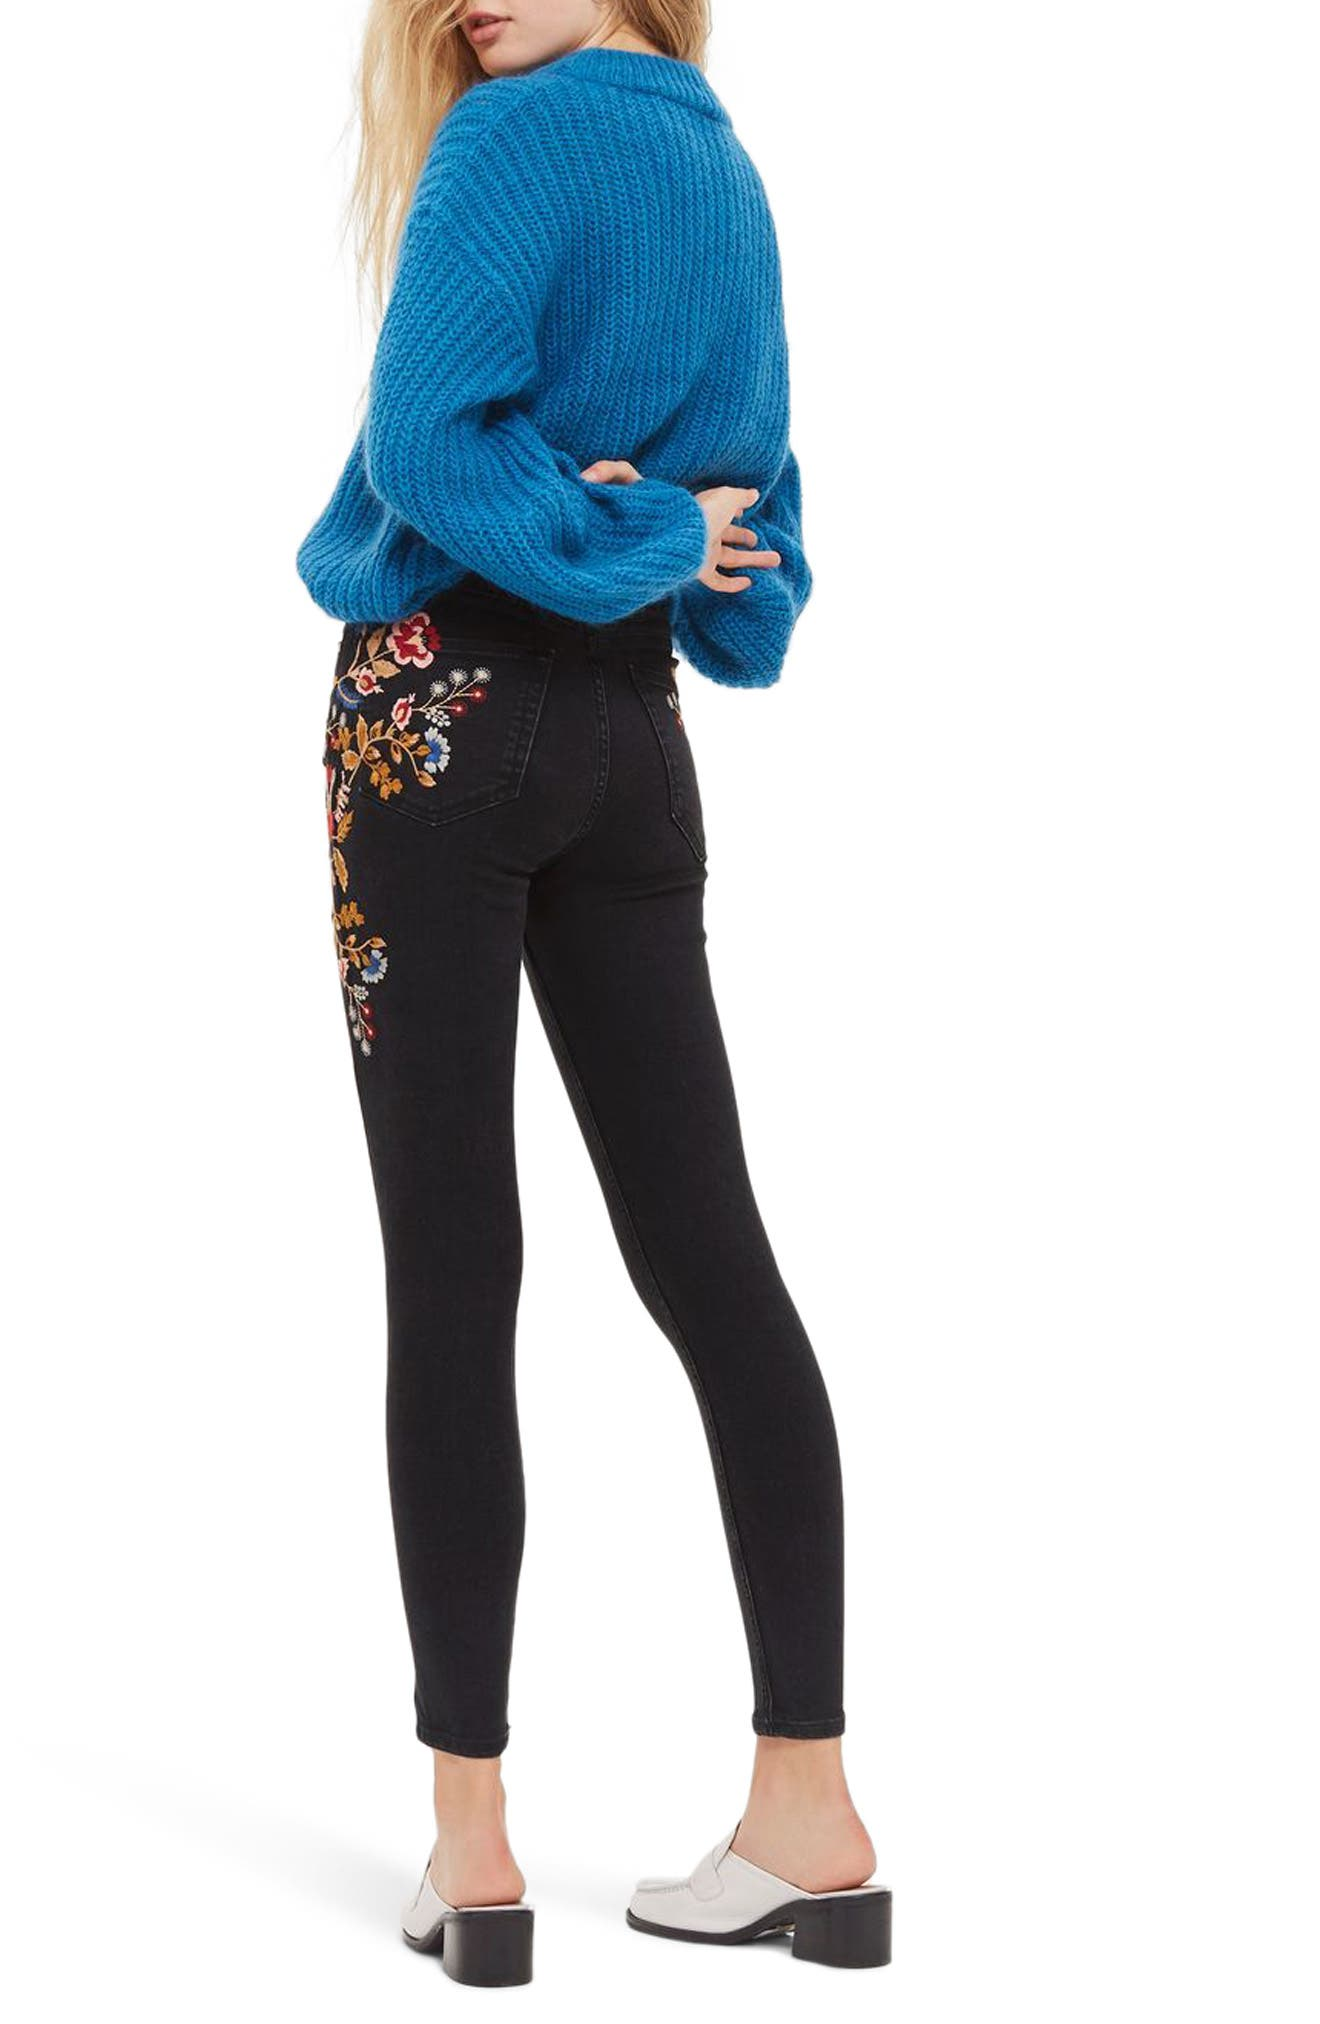 Jamie Embroidered High Waist Skinny Jeans,                             Alternate thumbnail 2, color,                             Washed Black Multi